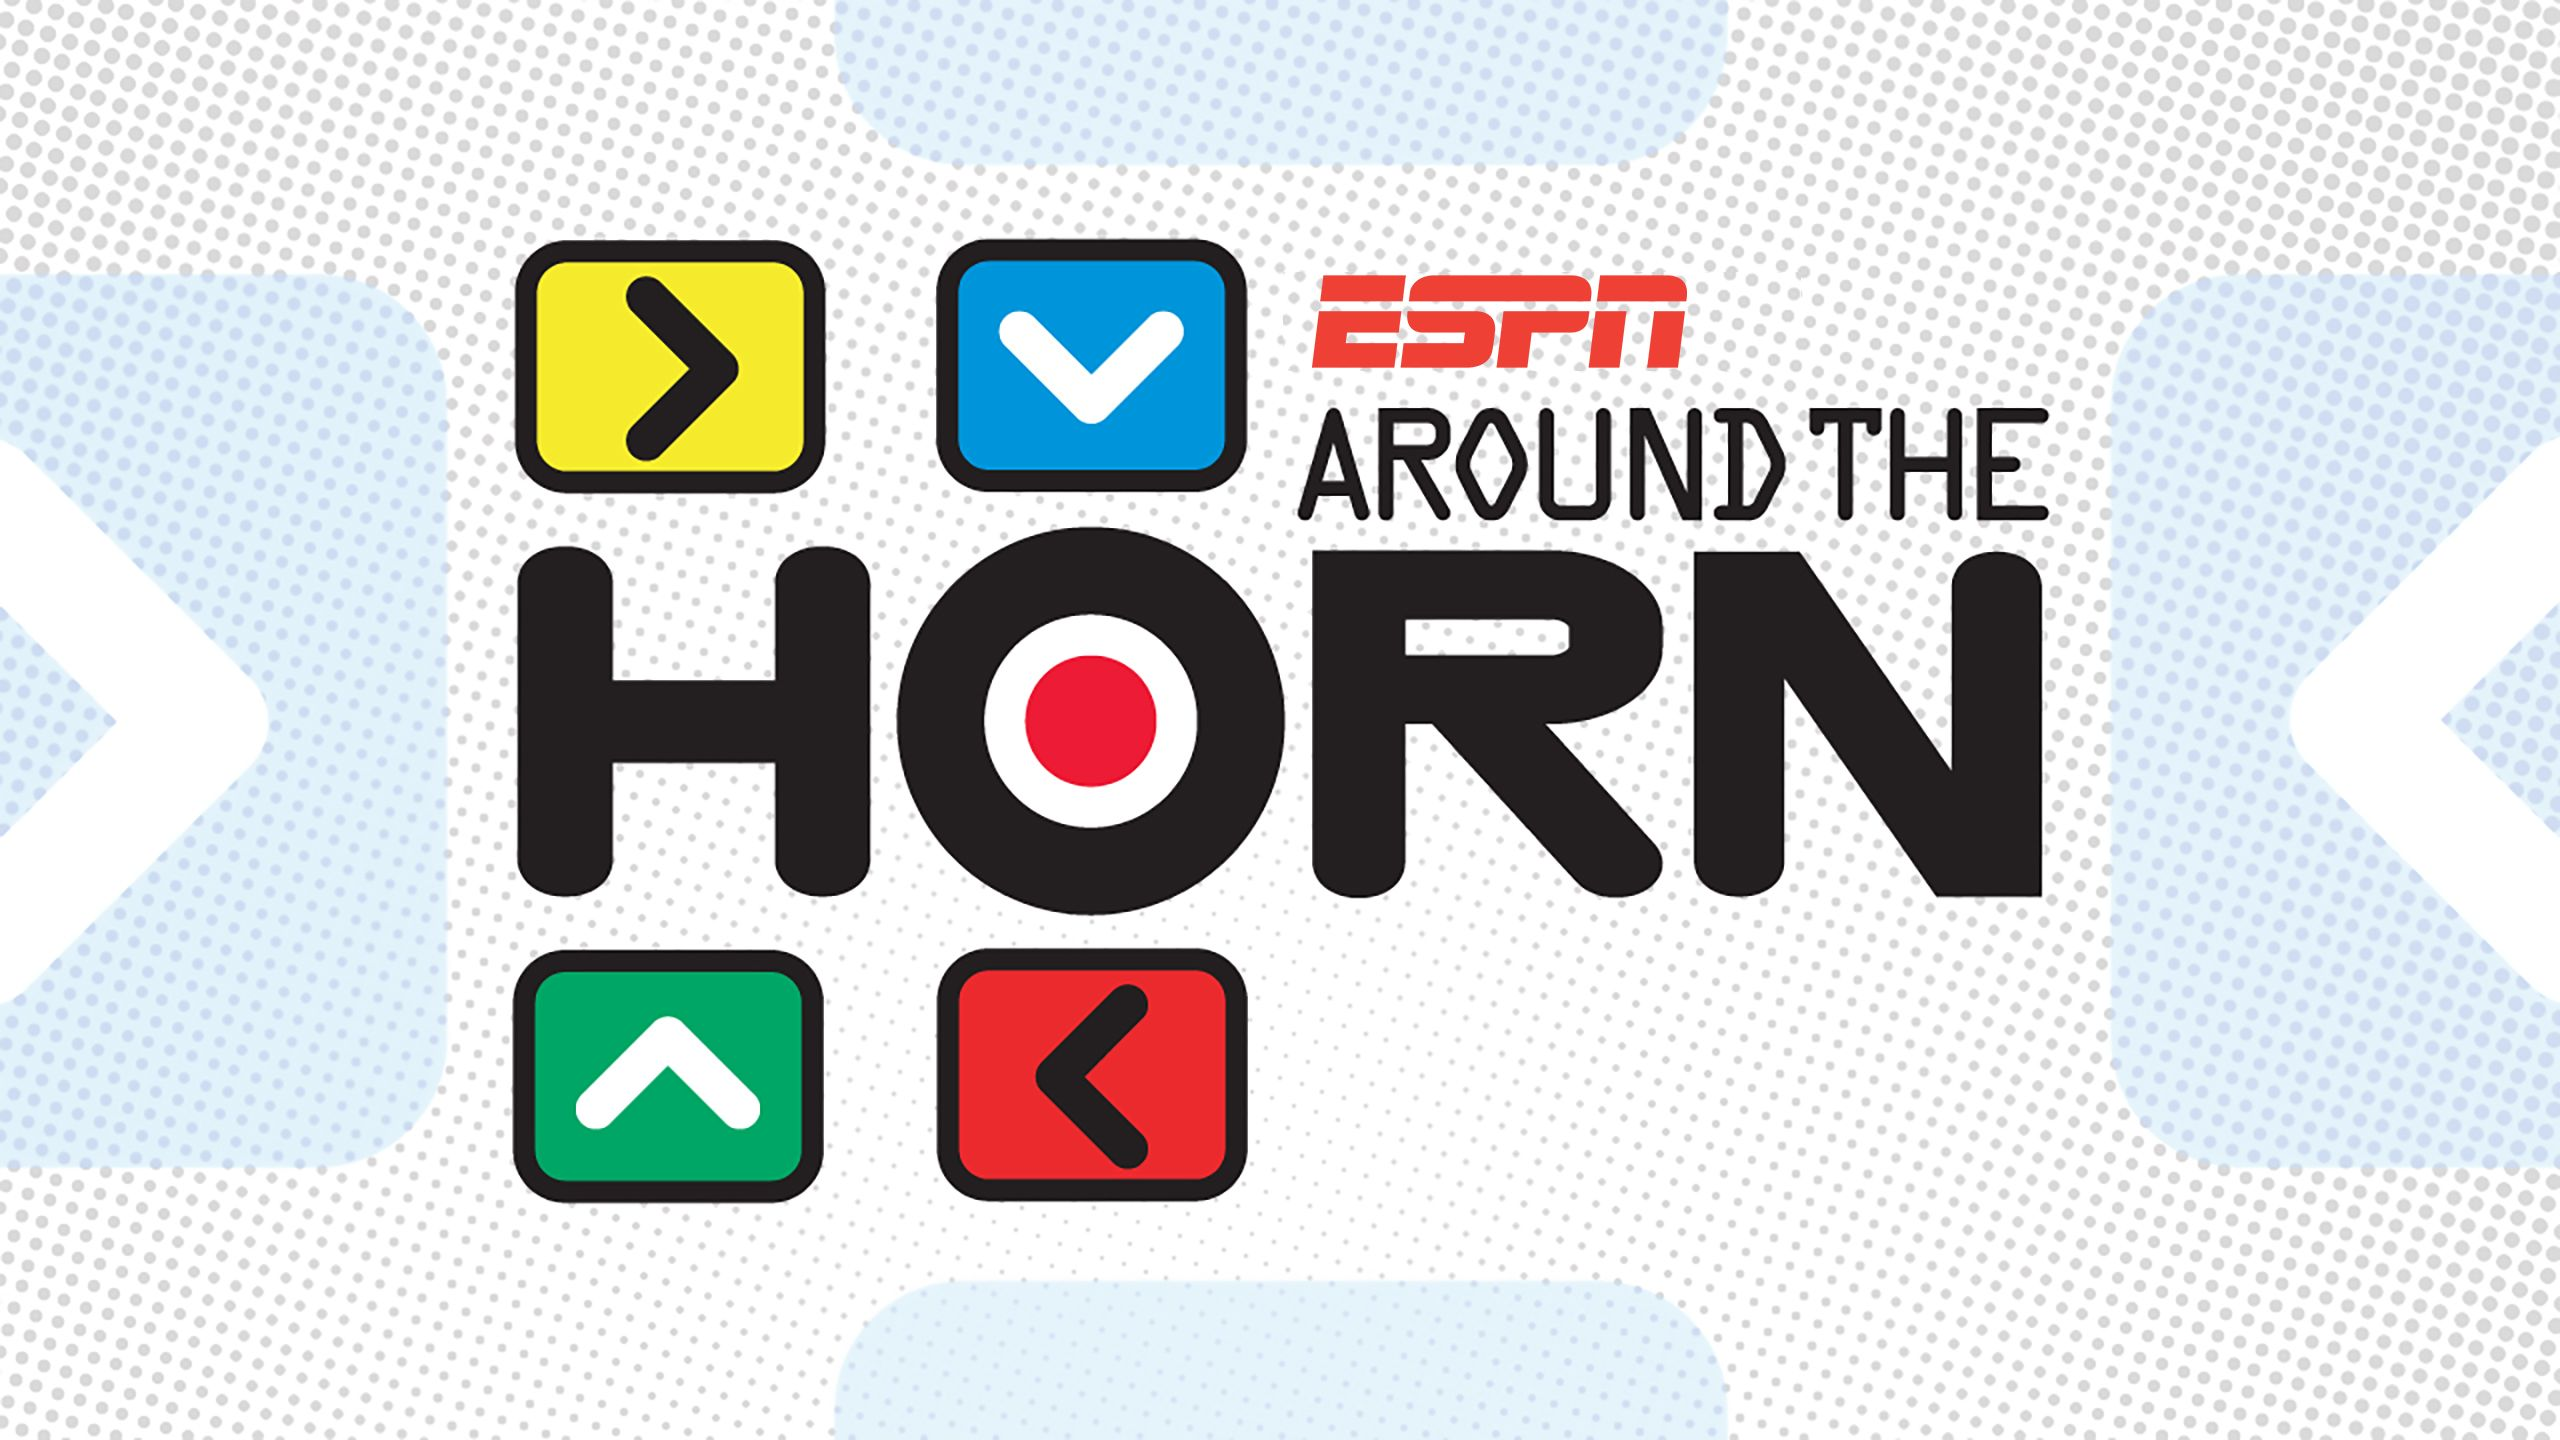 Wed, 5/23 - Around The Horn